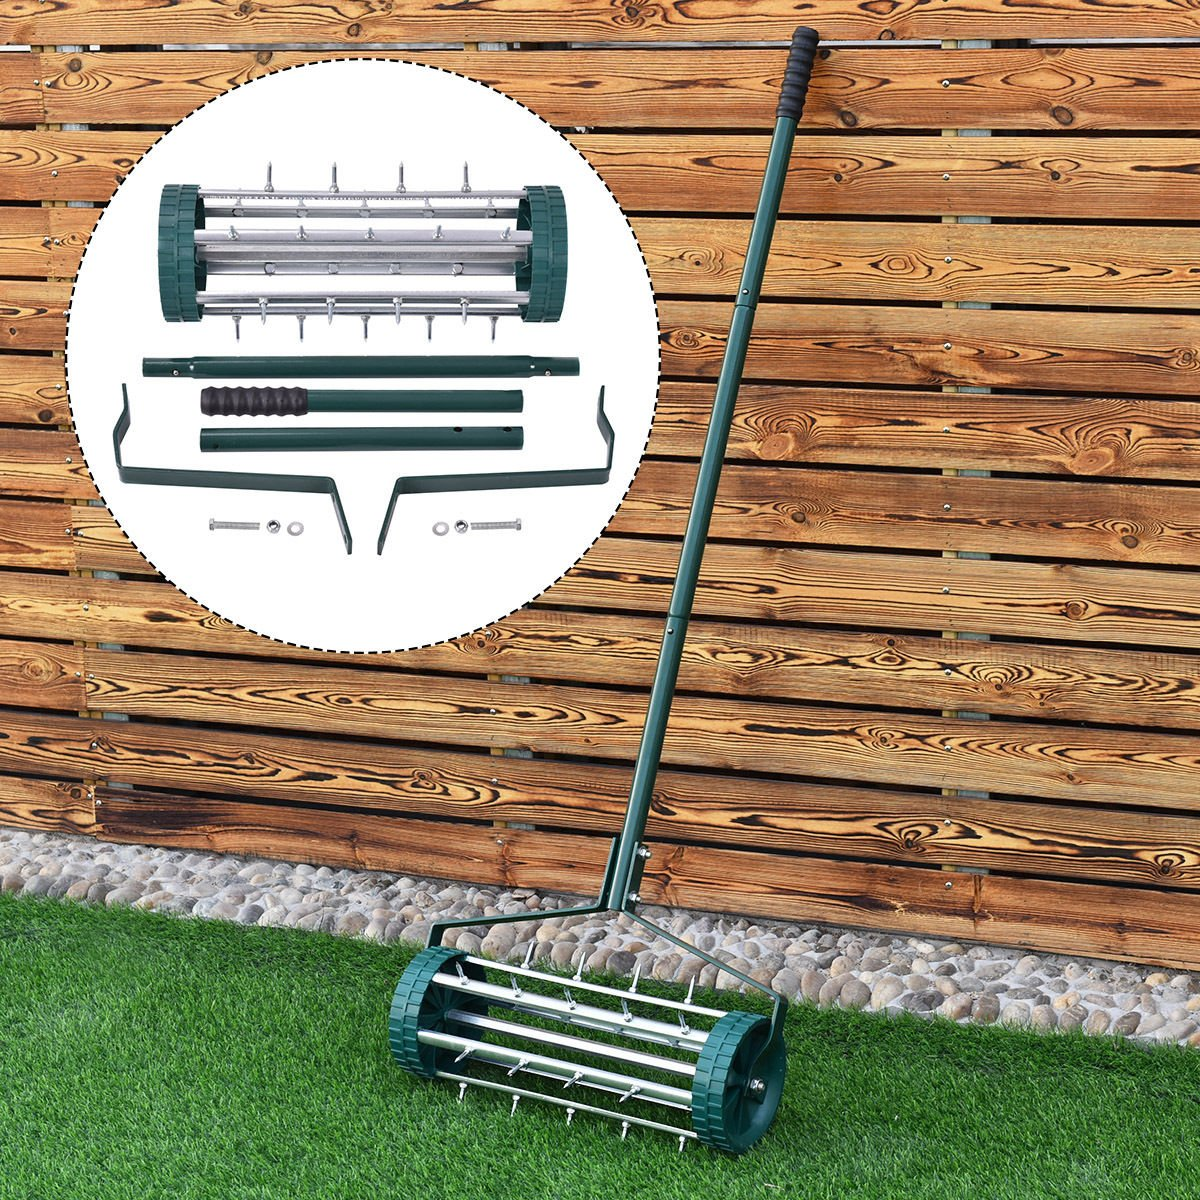 Amazon.com: New Heavy Duty Rolling Garden Lawn Aerator Roller Home ...